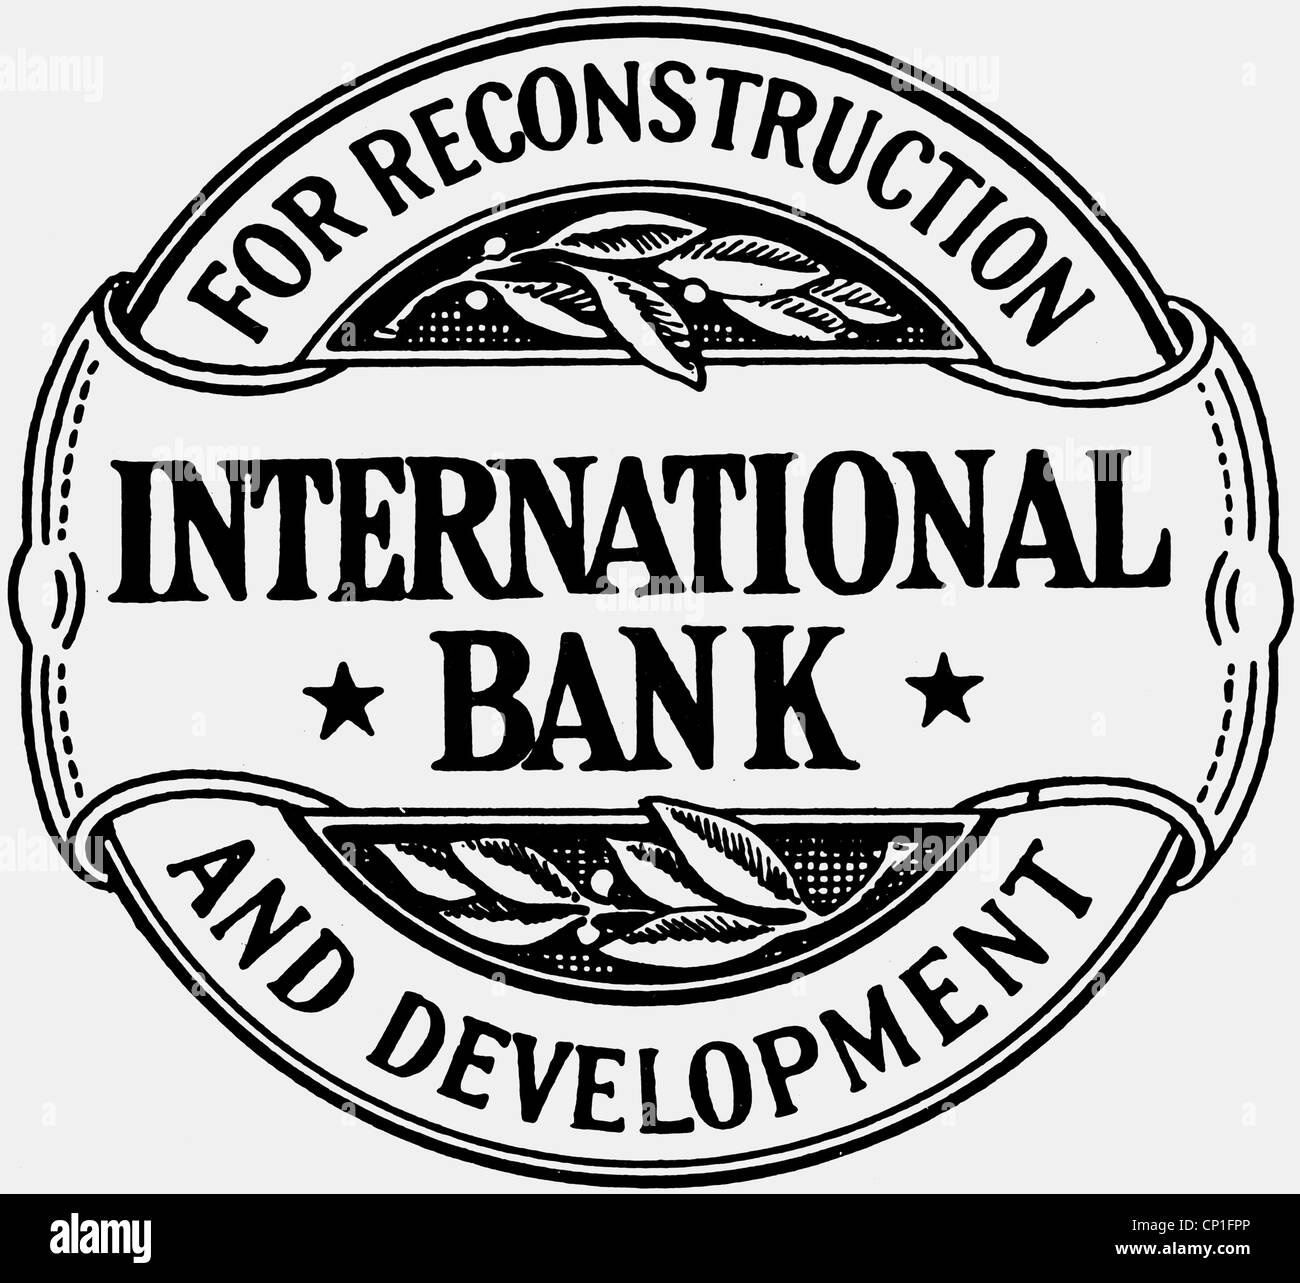 money, banks, International Bank for Reconstruction and Development, founded in 1944, Additional-Rights-Clearences Stock Photo